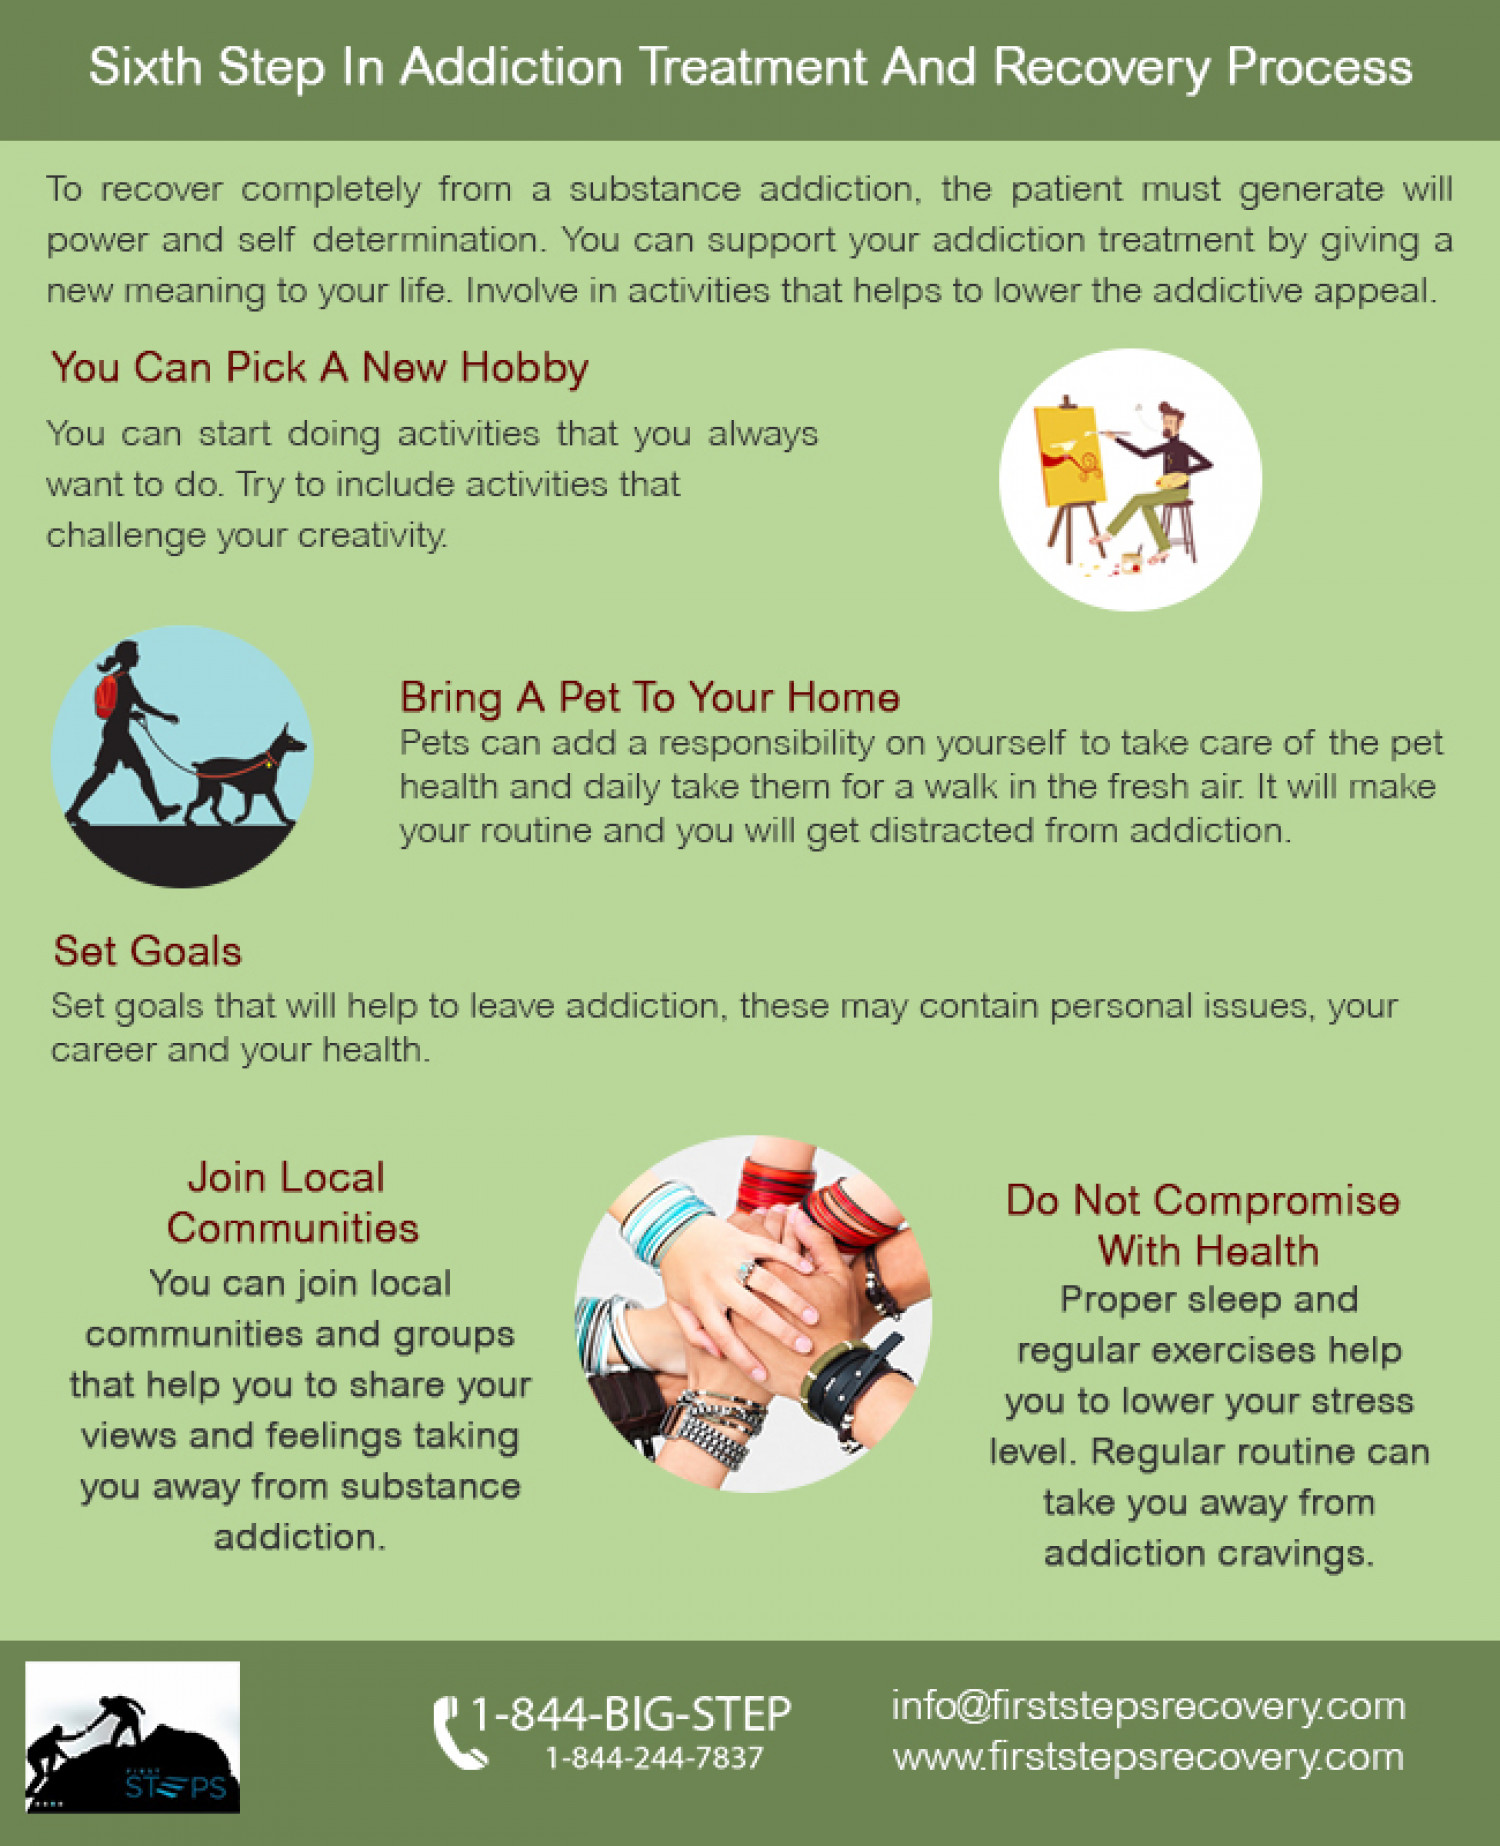 ... Step In Drug Addiction Treatment And Recovery Process Infographic